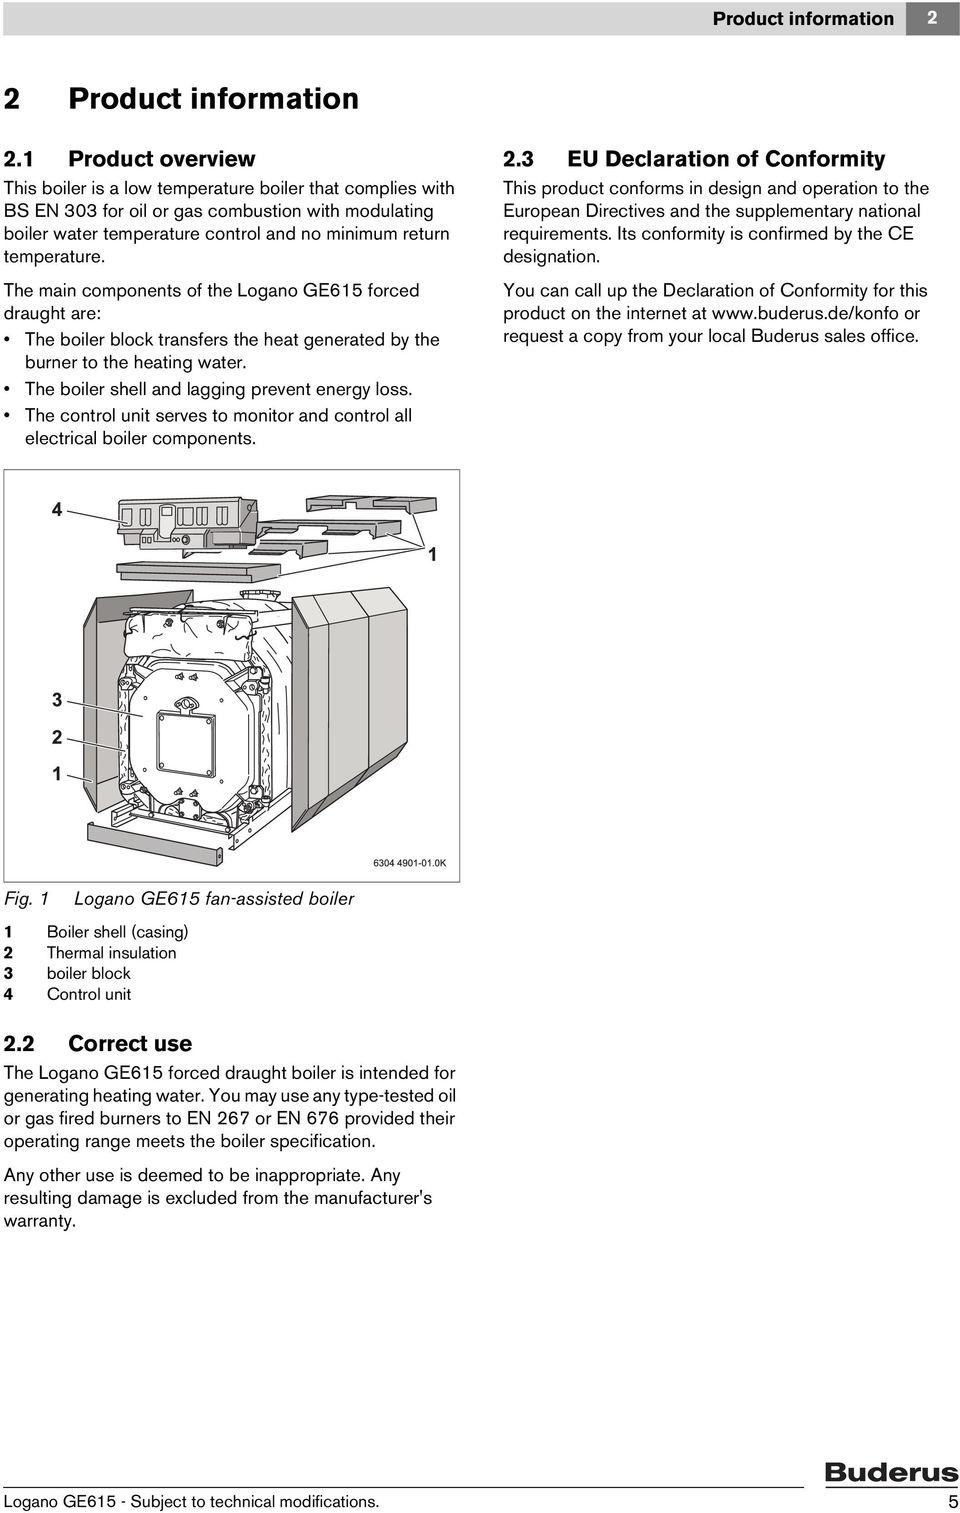 Installation And Servicing Instructions Pdf Buderus Boiler Wiring Diagram The Main Components Of Logano Ge615 Forced Draught Are Block Transfers